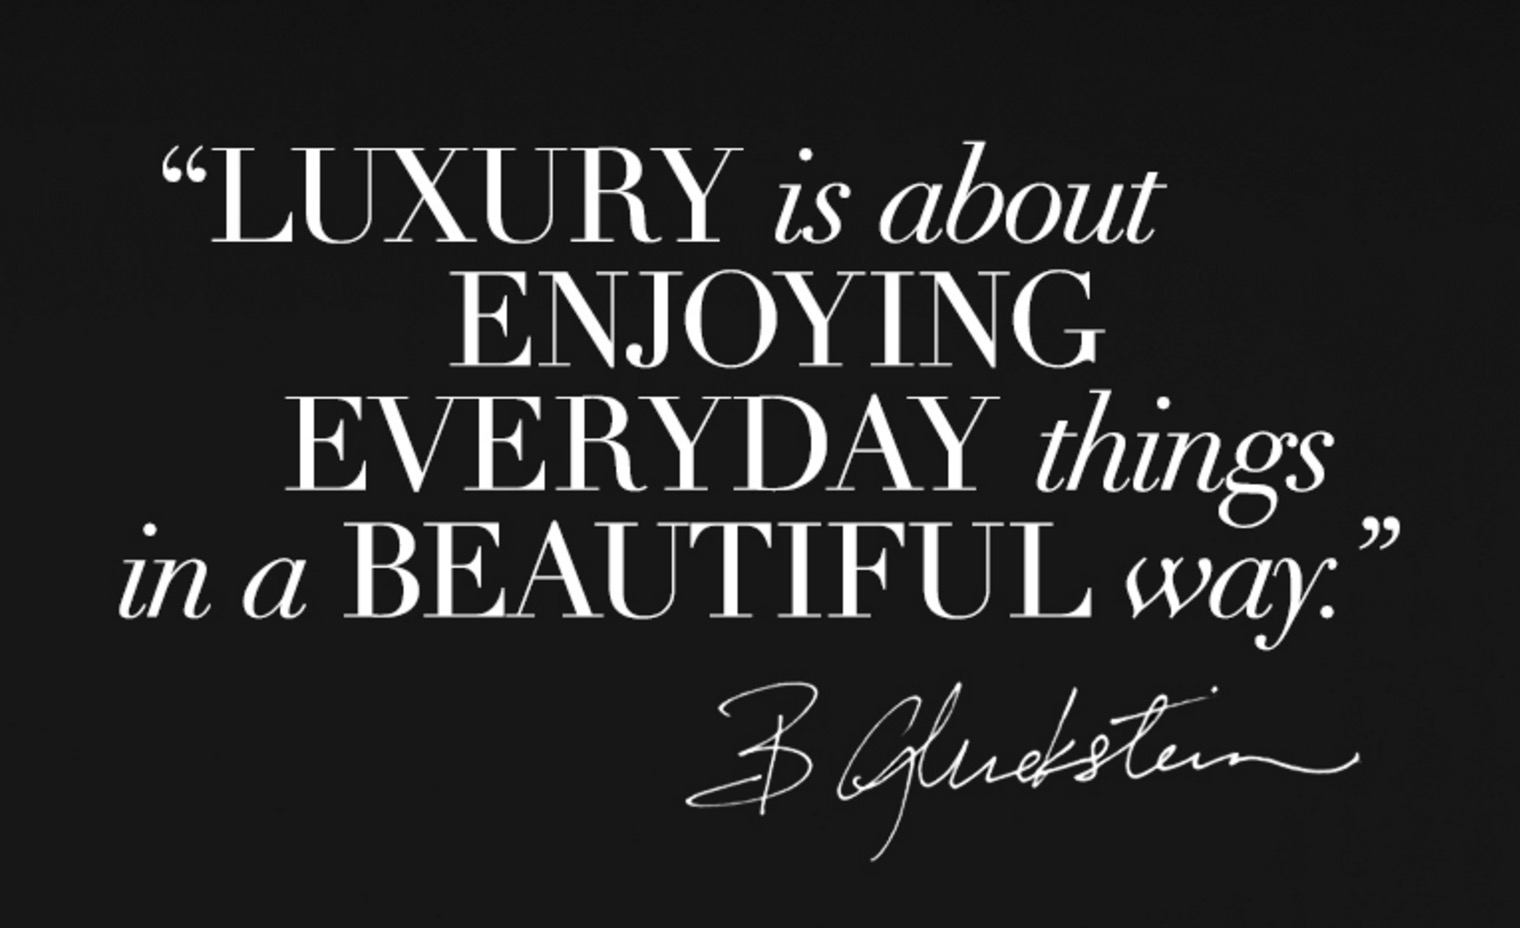 """""""Luxury is about Enjoying Everyday things in a BEAUTIFUL way."""" - Brian Gluckstein"""